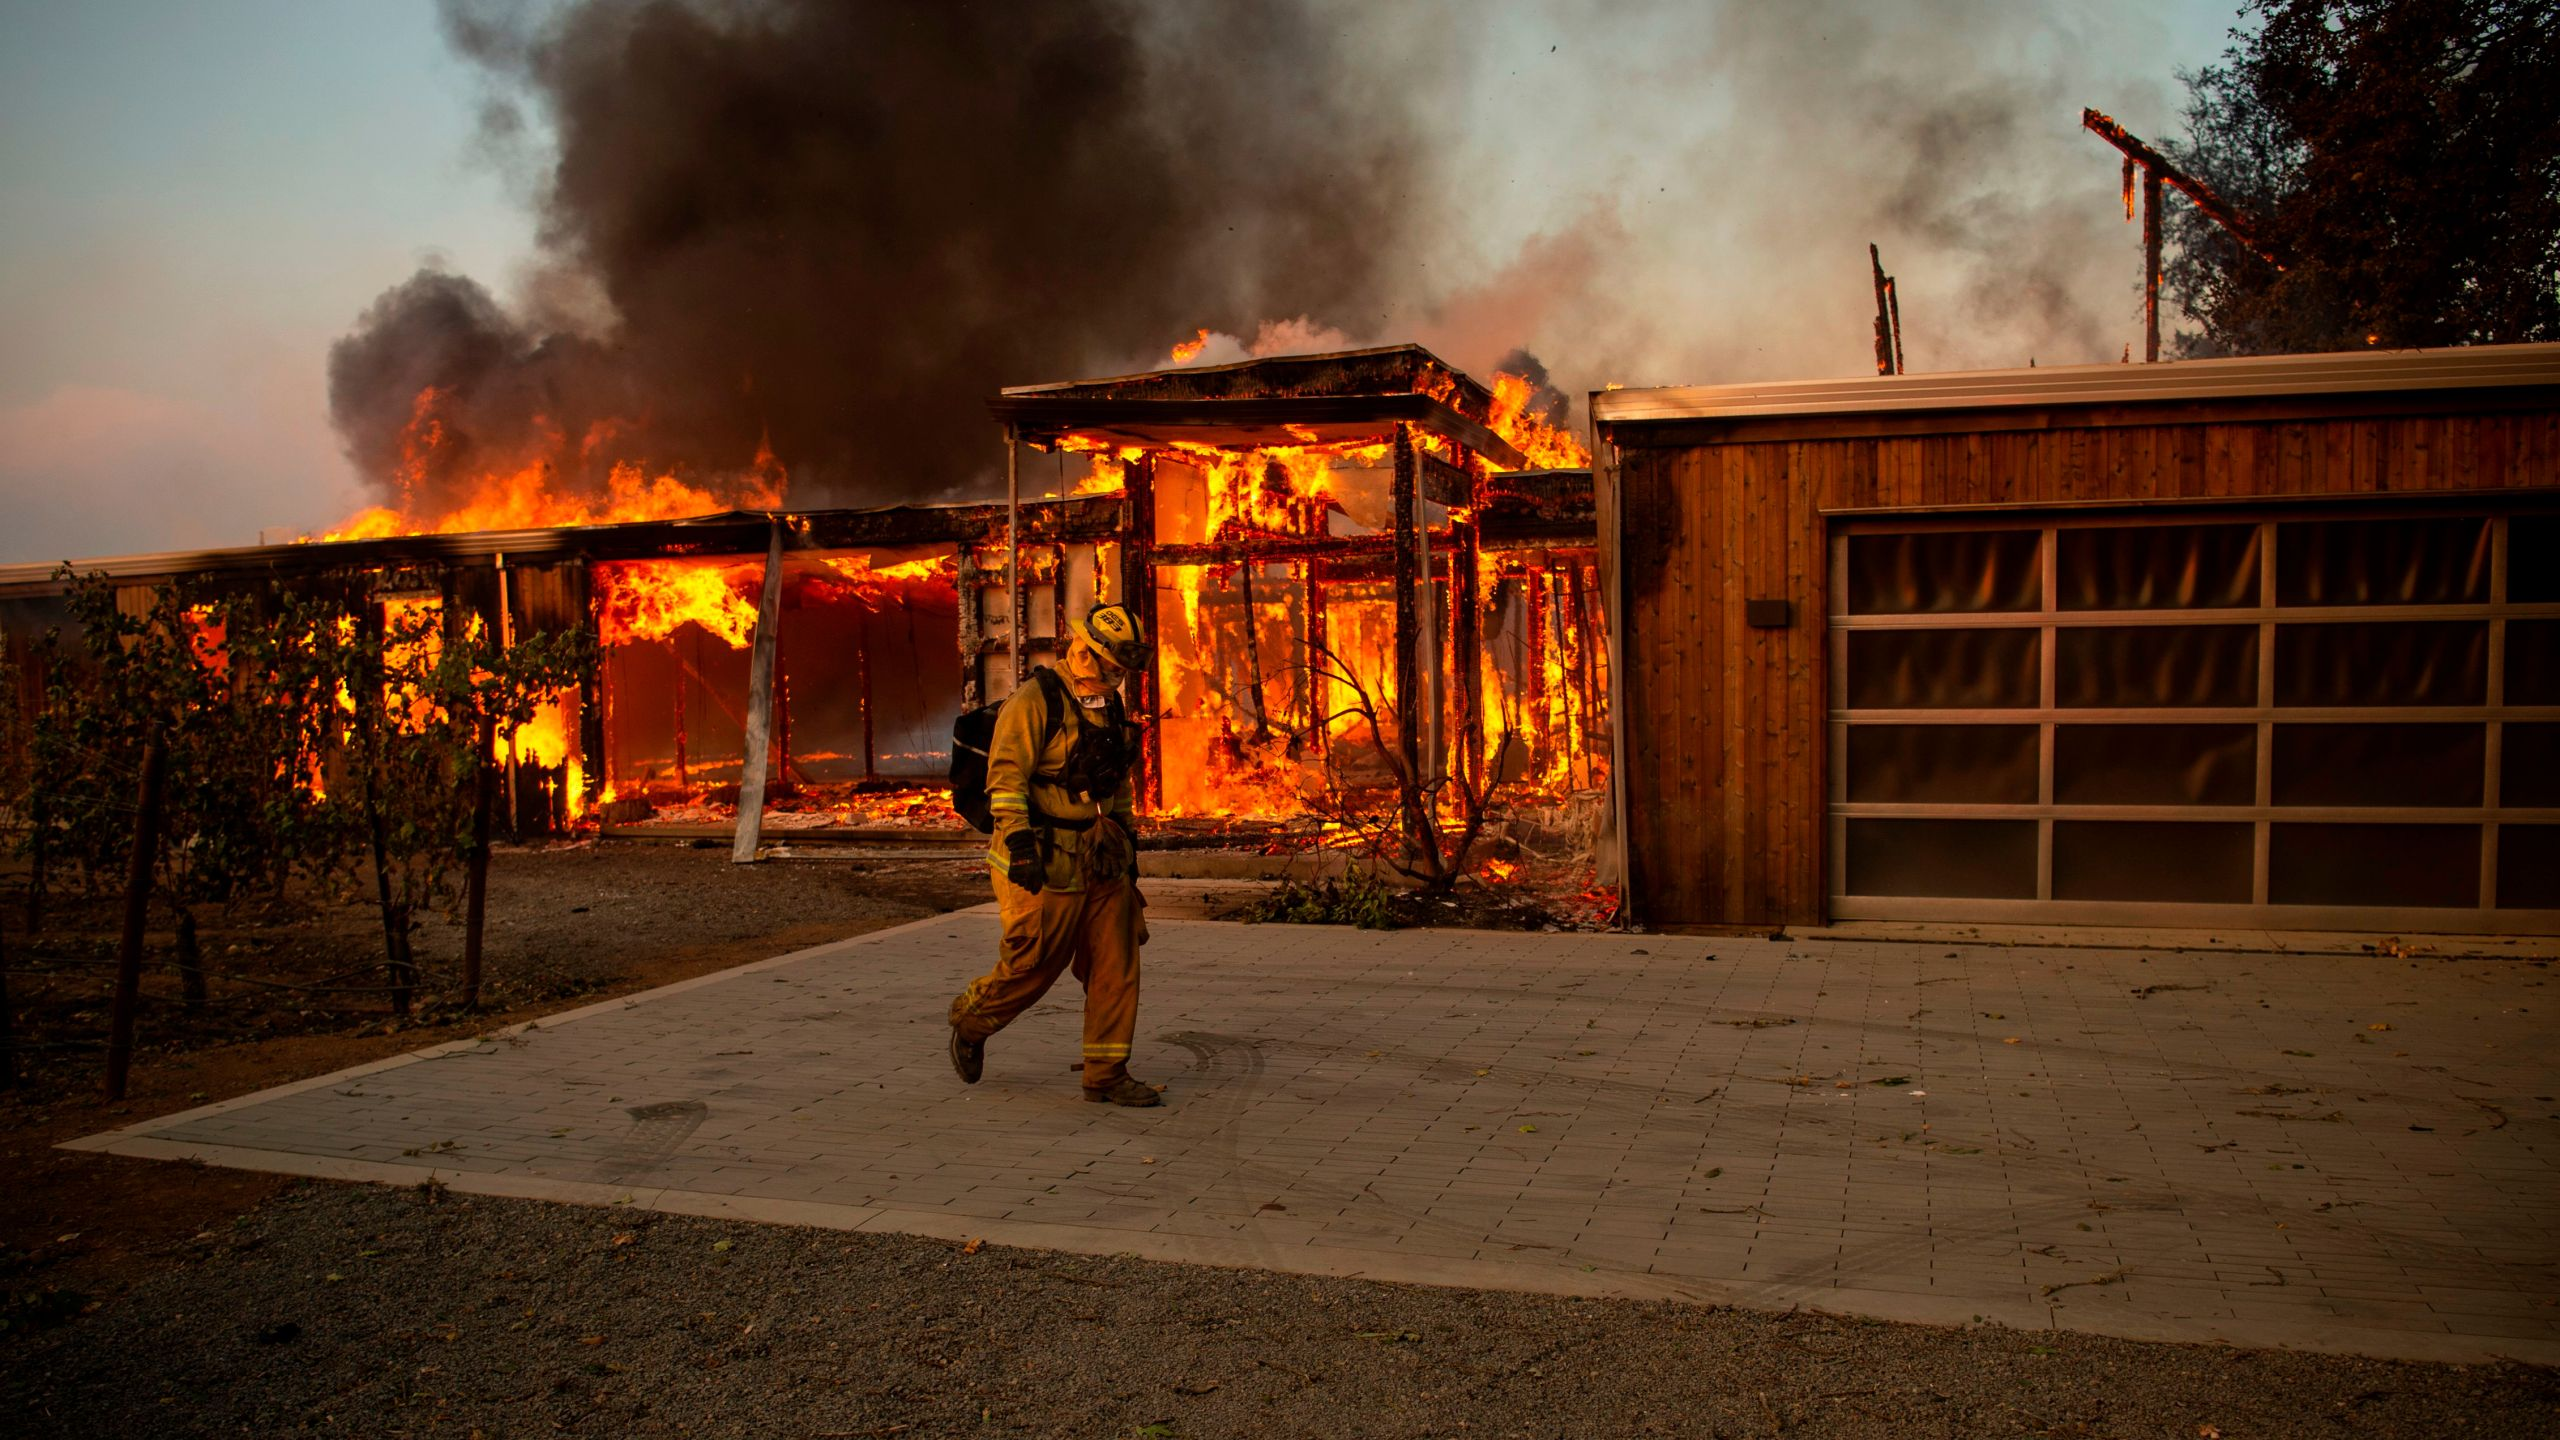 A firefighter walks by a house as it burns during the Kincade fire in Healdsburg, Calif. on Oct. 27, 2019. (Credit: JOSH EDELSON/AFP via Getty Images)